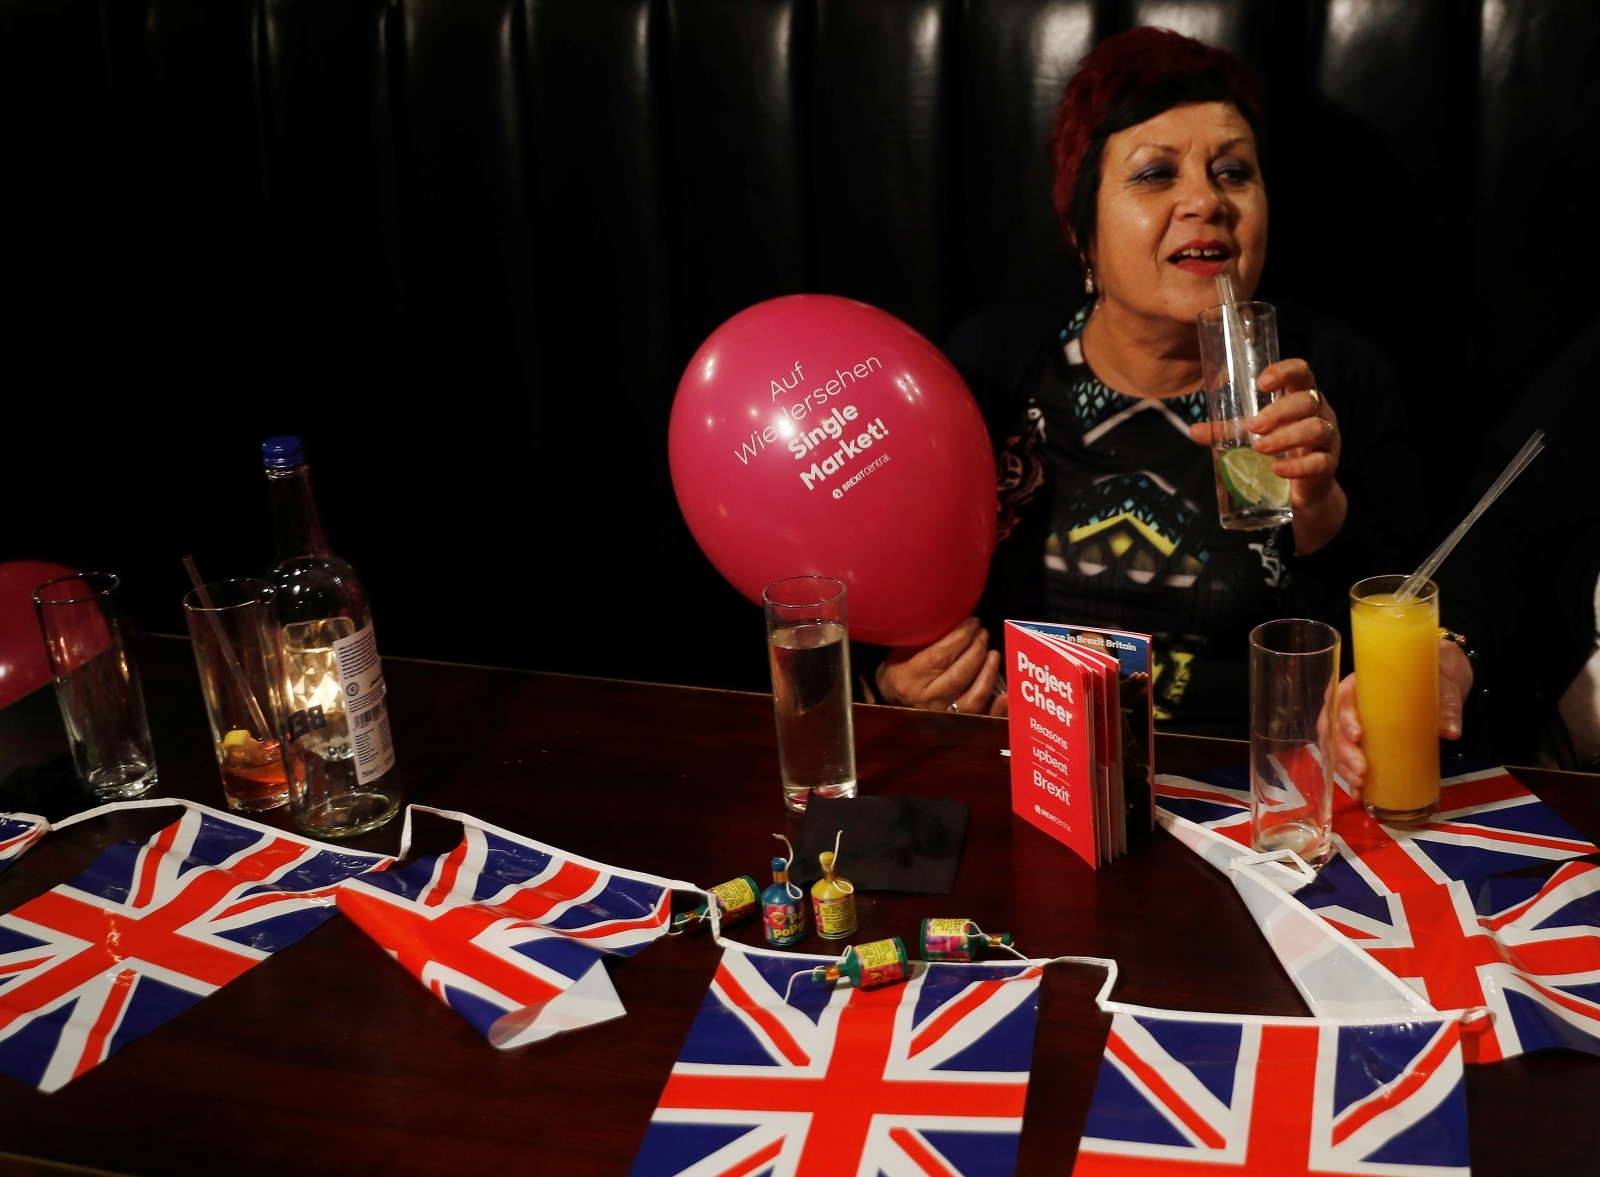 A woman holds a Pro-Brexit balloon in a pub at an event to celebrate the invoking of Article 50 after Britain's Prime Minister Theresa May triggered the process by which the United Kingdom will leave the European Union, in London, Britain March 29, 2017